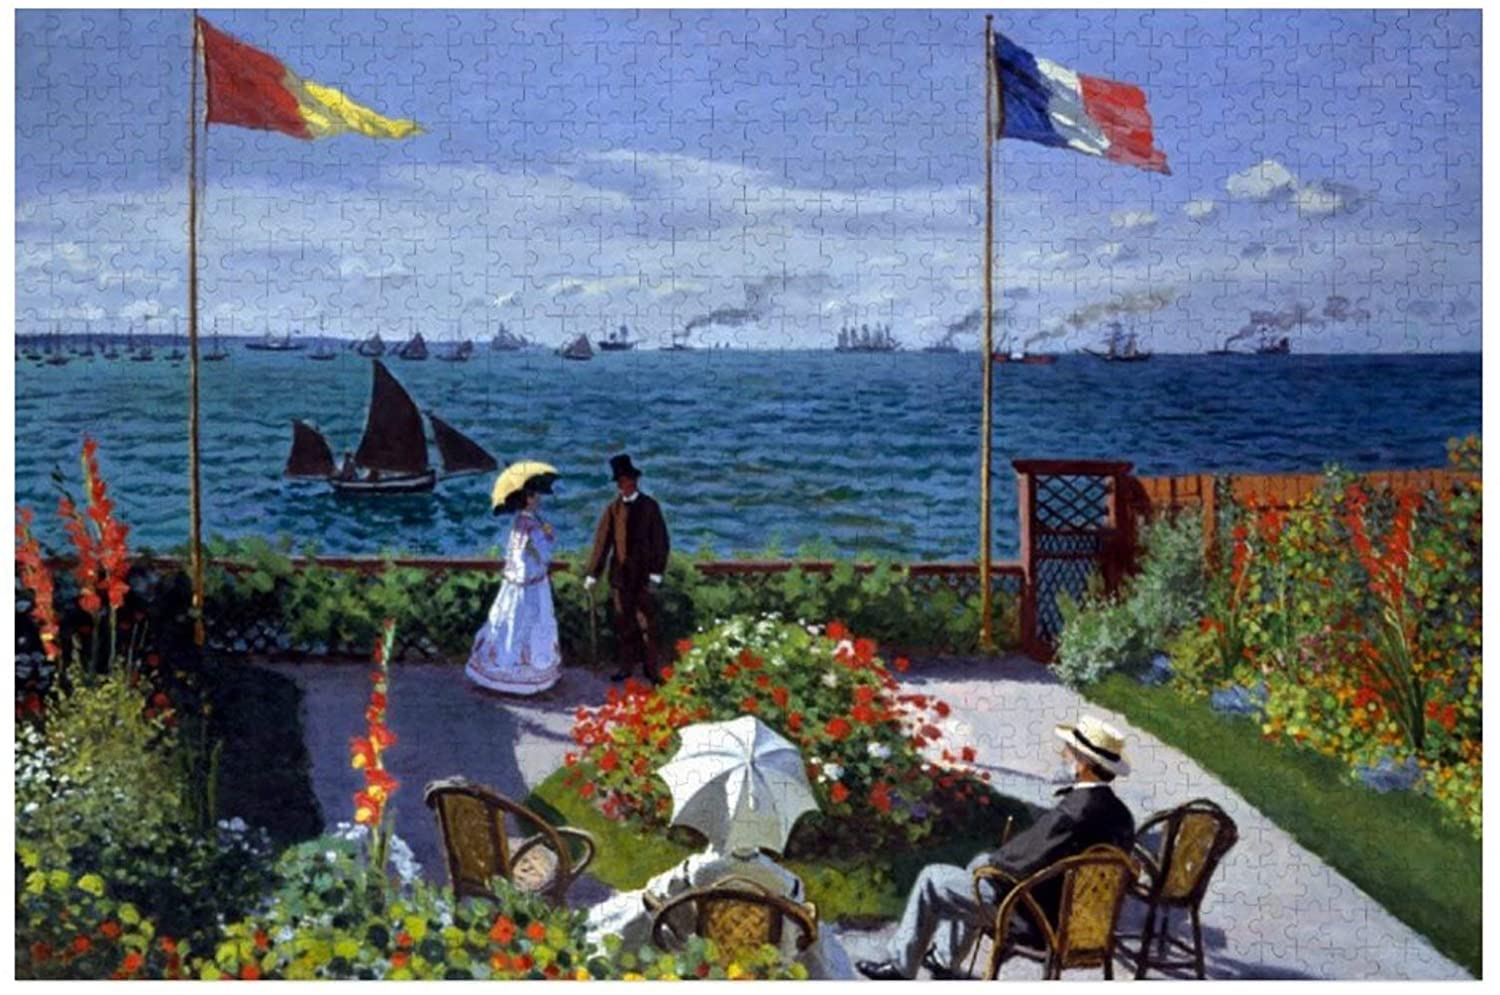 Claude Monet Garden at Sainte Adresse Puzzles for Adults, 1000 Piece Kids Jigsaw Puzzles Game Toys Gift for Children Boys and Girls, 20